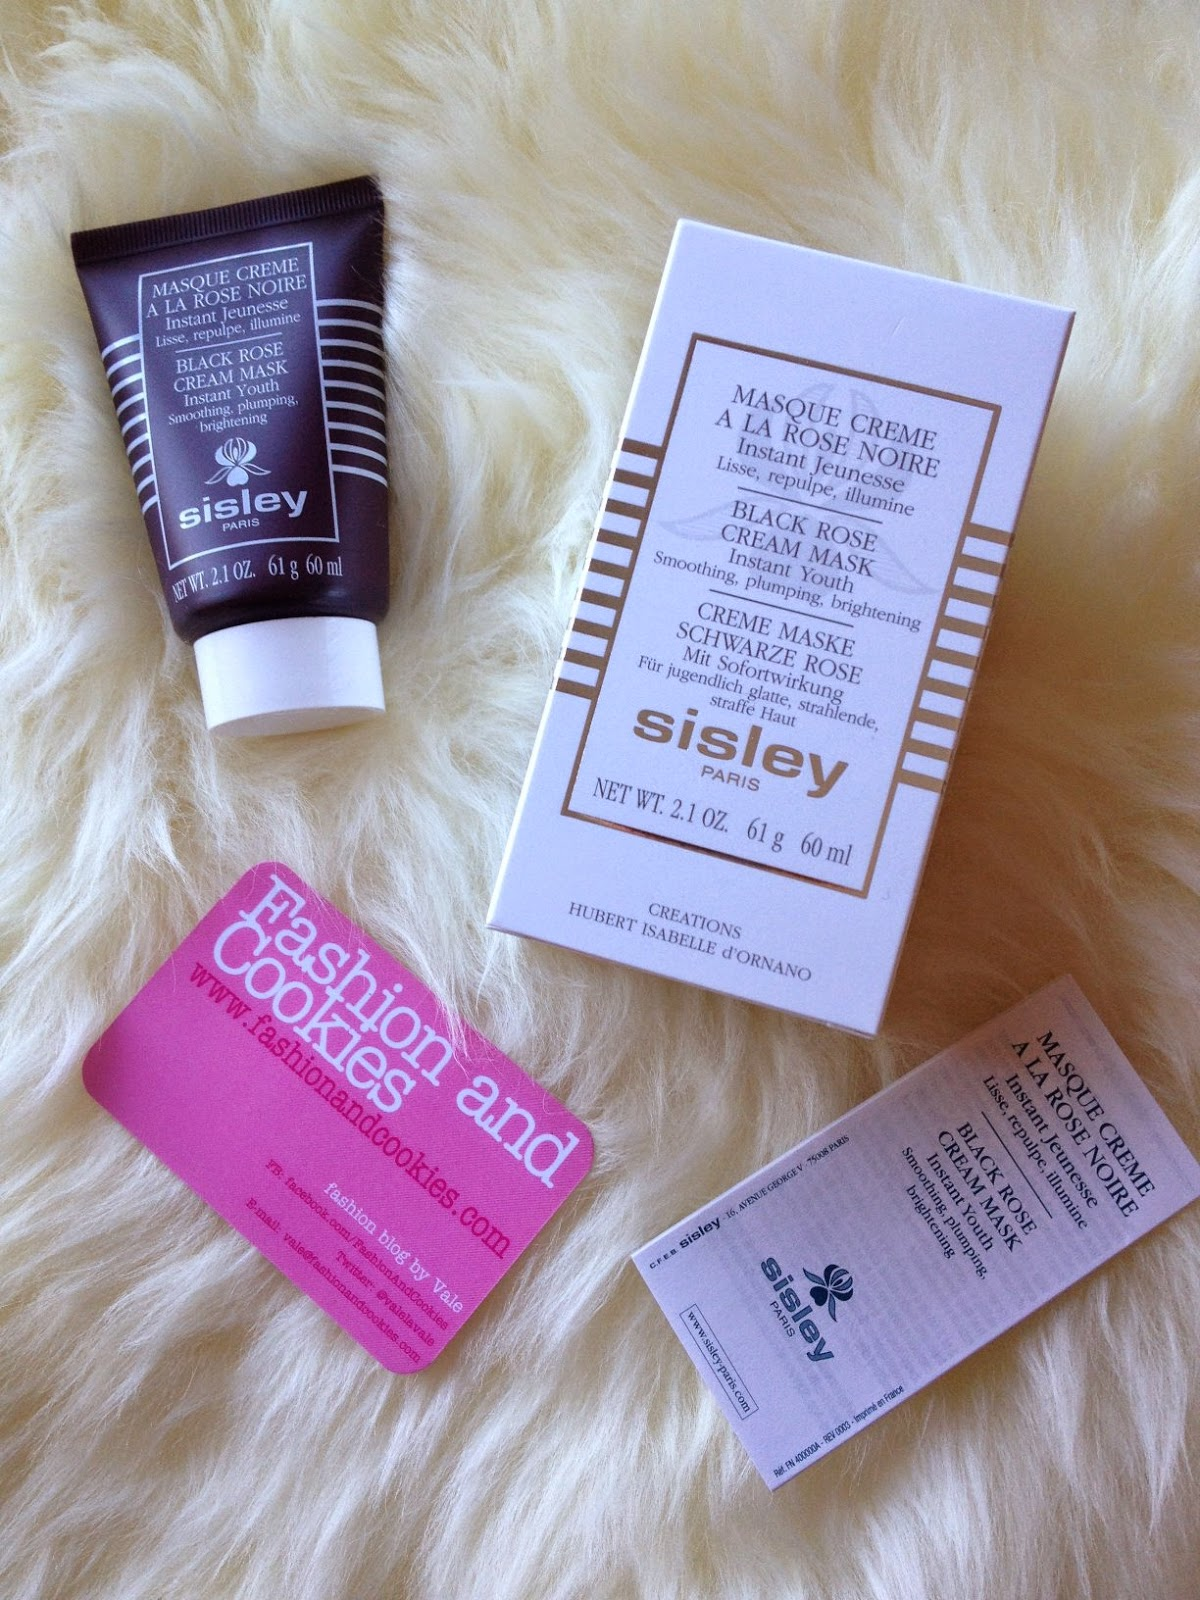 Sisley Cosmetics Masque Creme à la rose noire, Sisley Paris , Sisley Black Rose Mask, Fashion and Cookies fashion blog, fashion blogger skincare advice